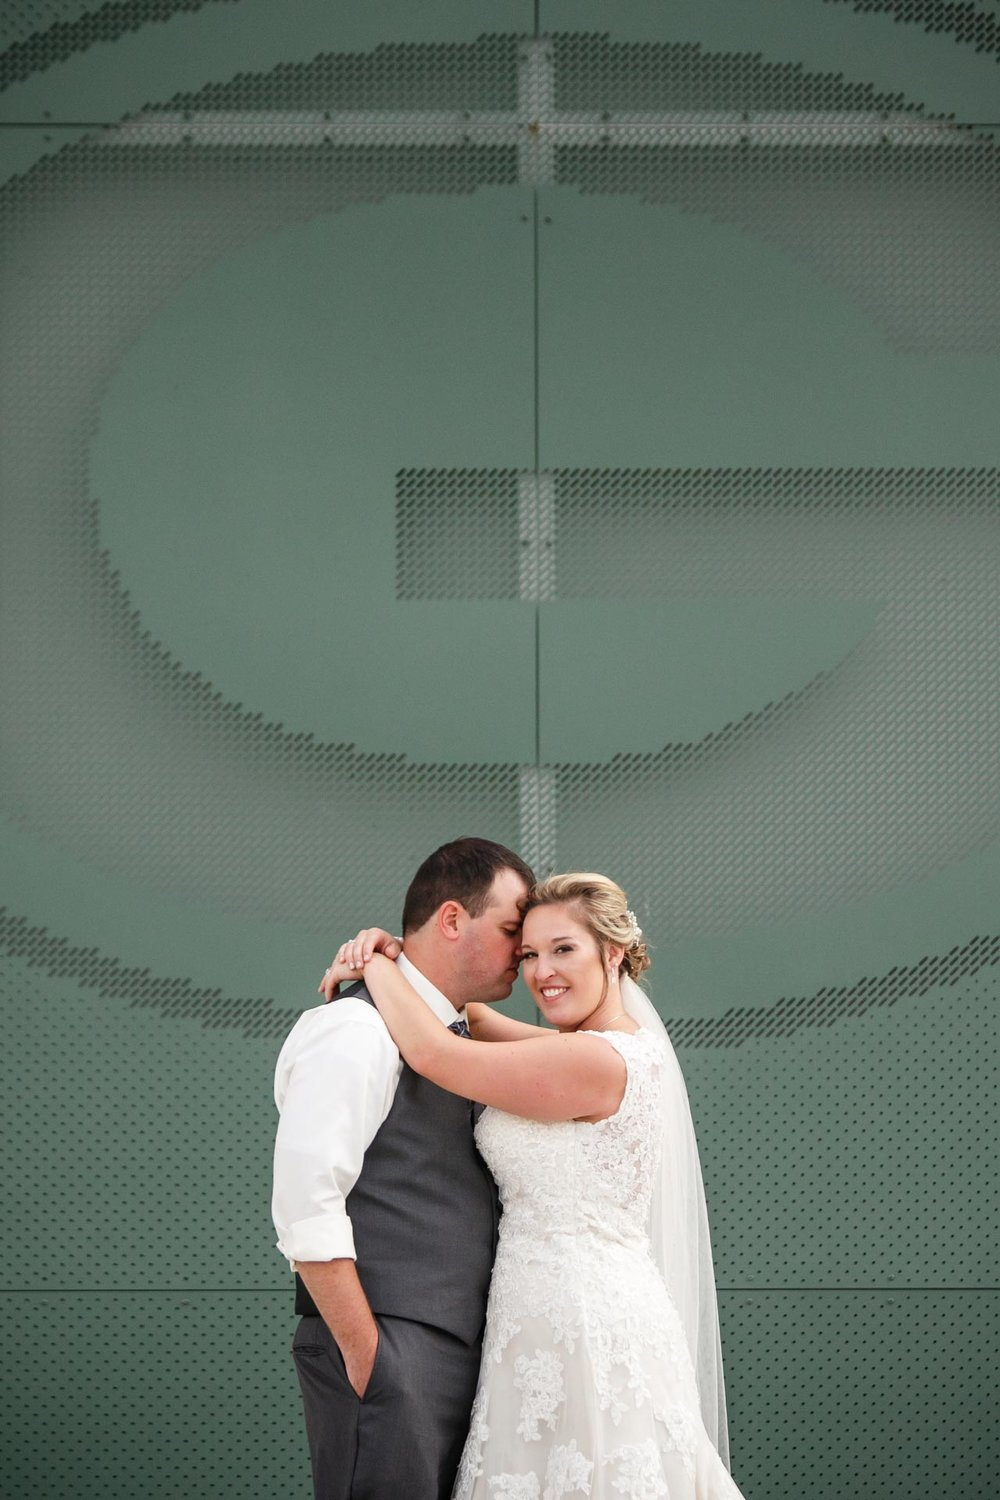 lambeau-field-wedding-bride-groom-adam-shea-photography-green-bay-appleton-neenah-photographer-8.jpg